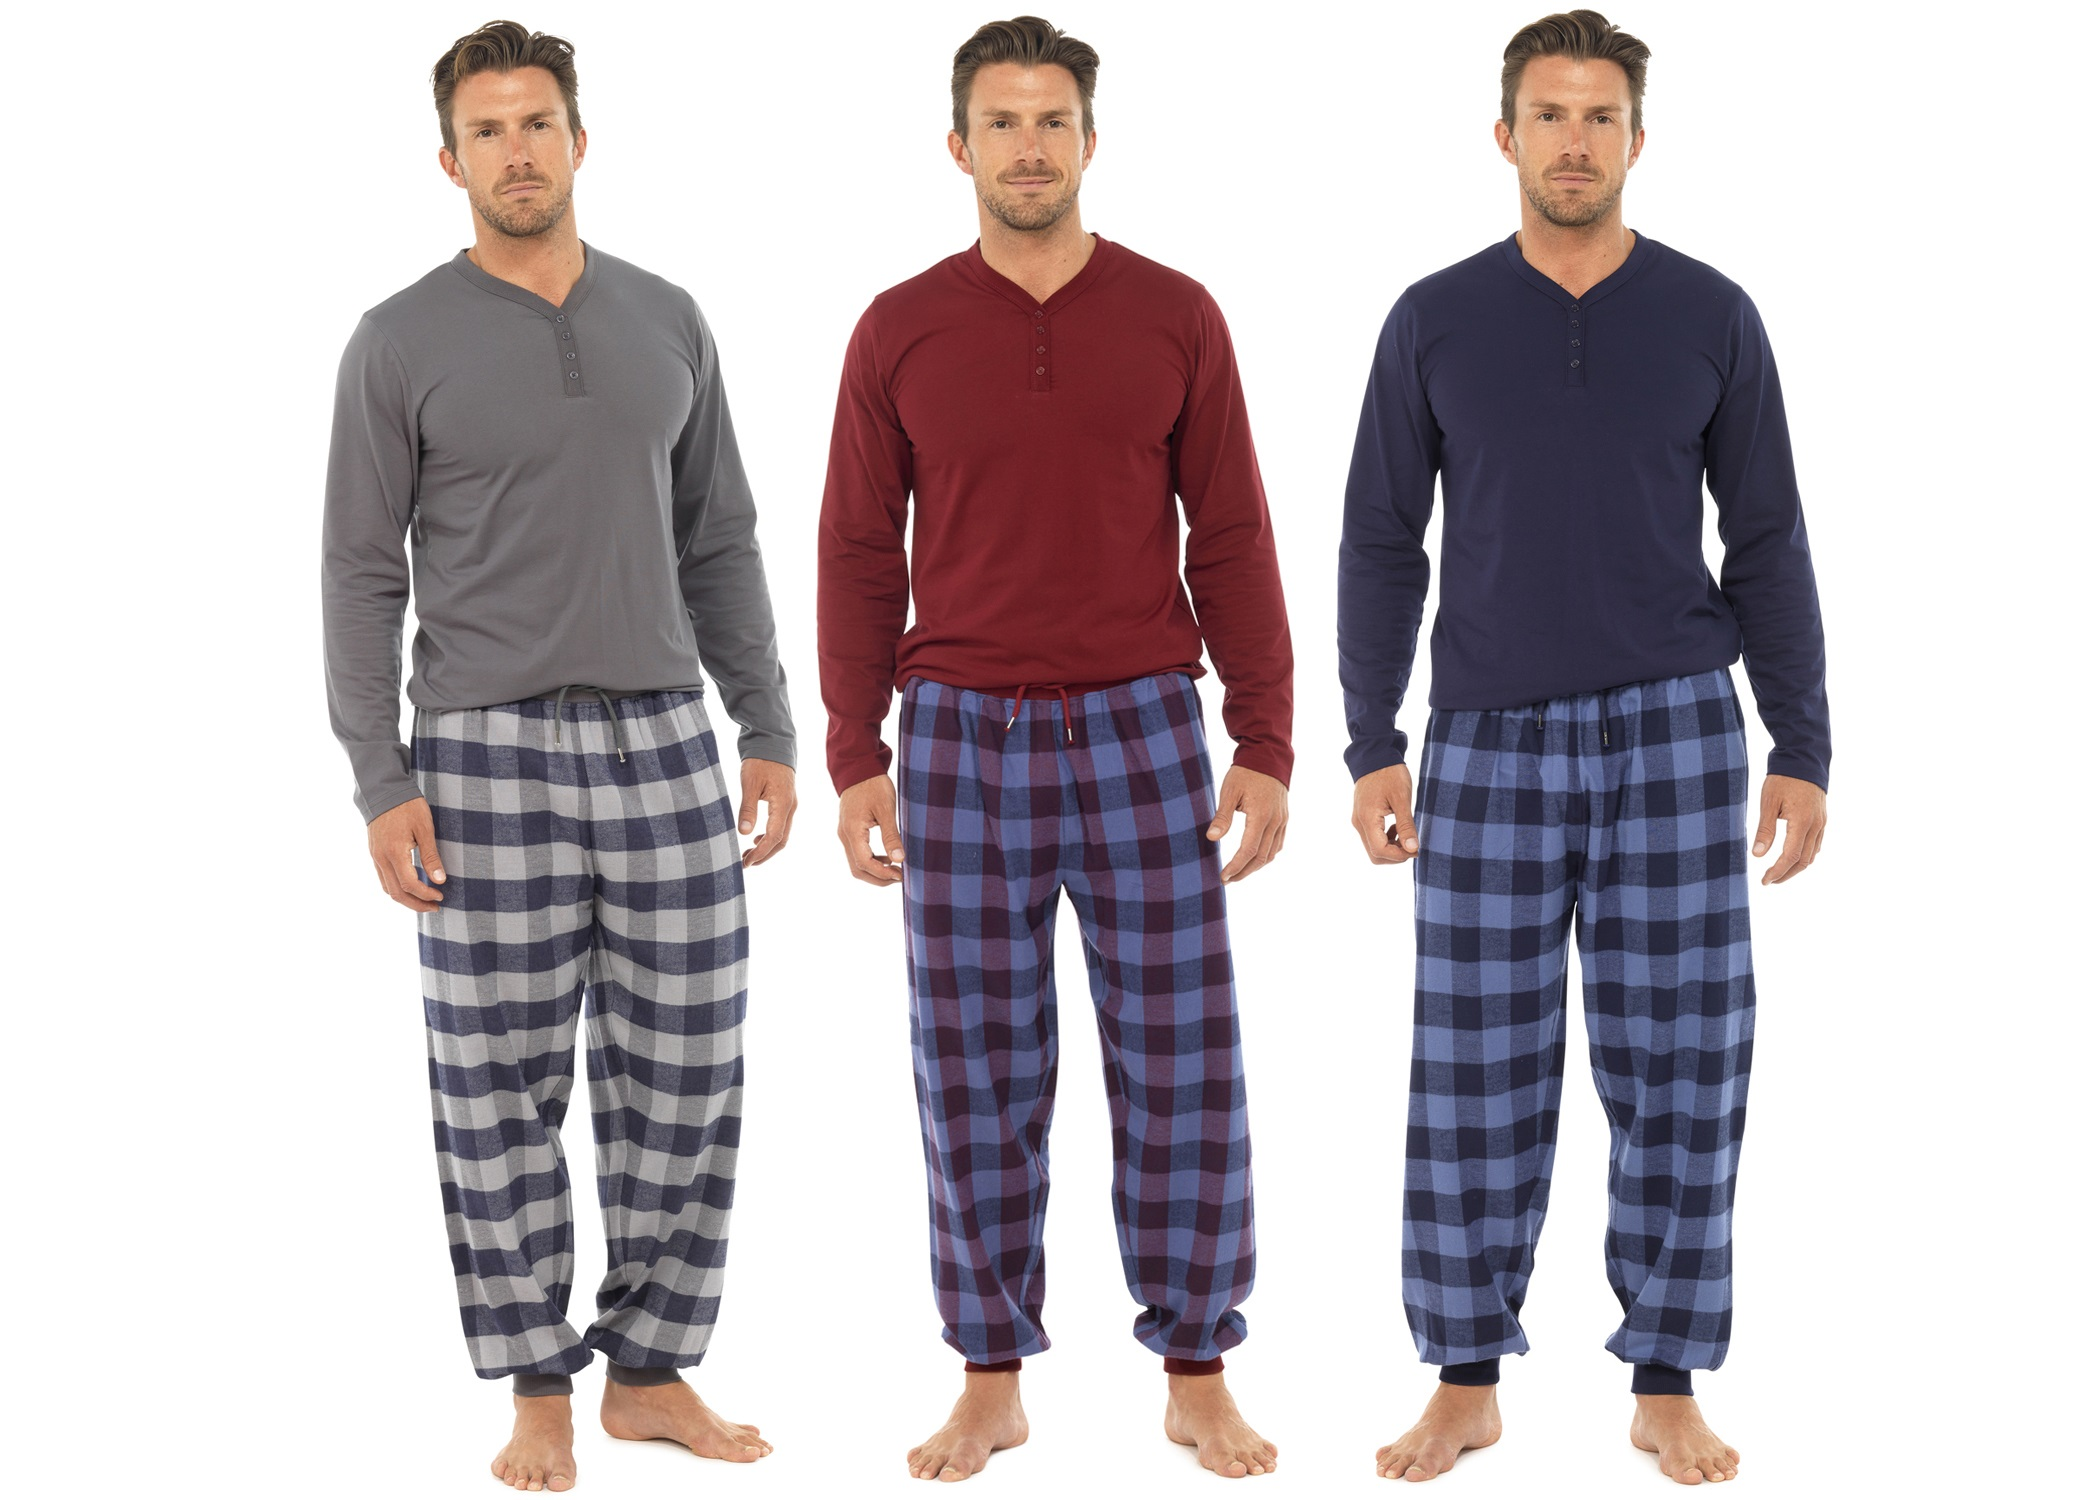 Get cozy in our selection of men's sleepwear including the best in men's robes, pajama sets and more. Shop by designer, price, color and more today!